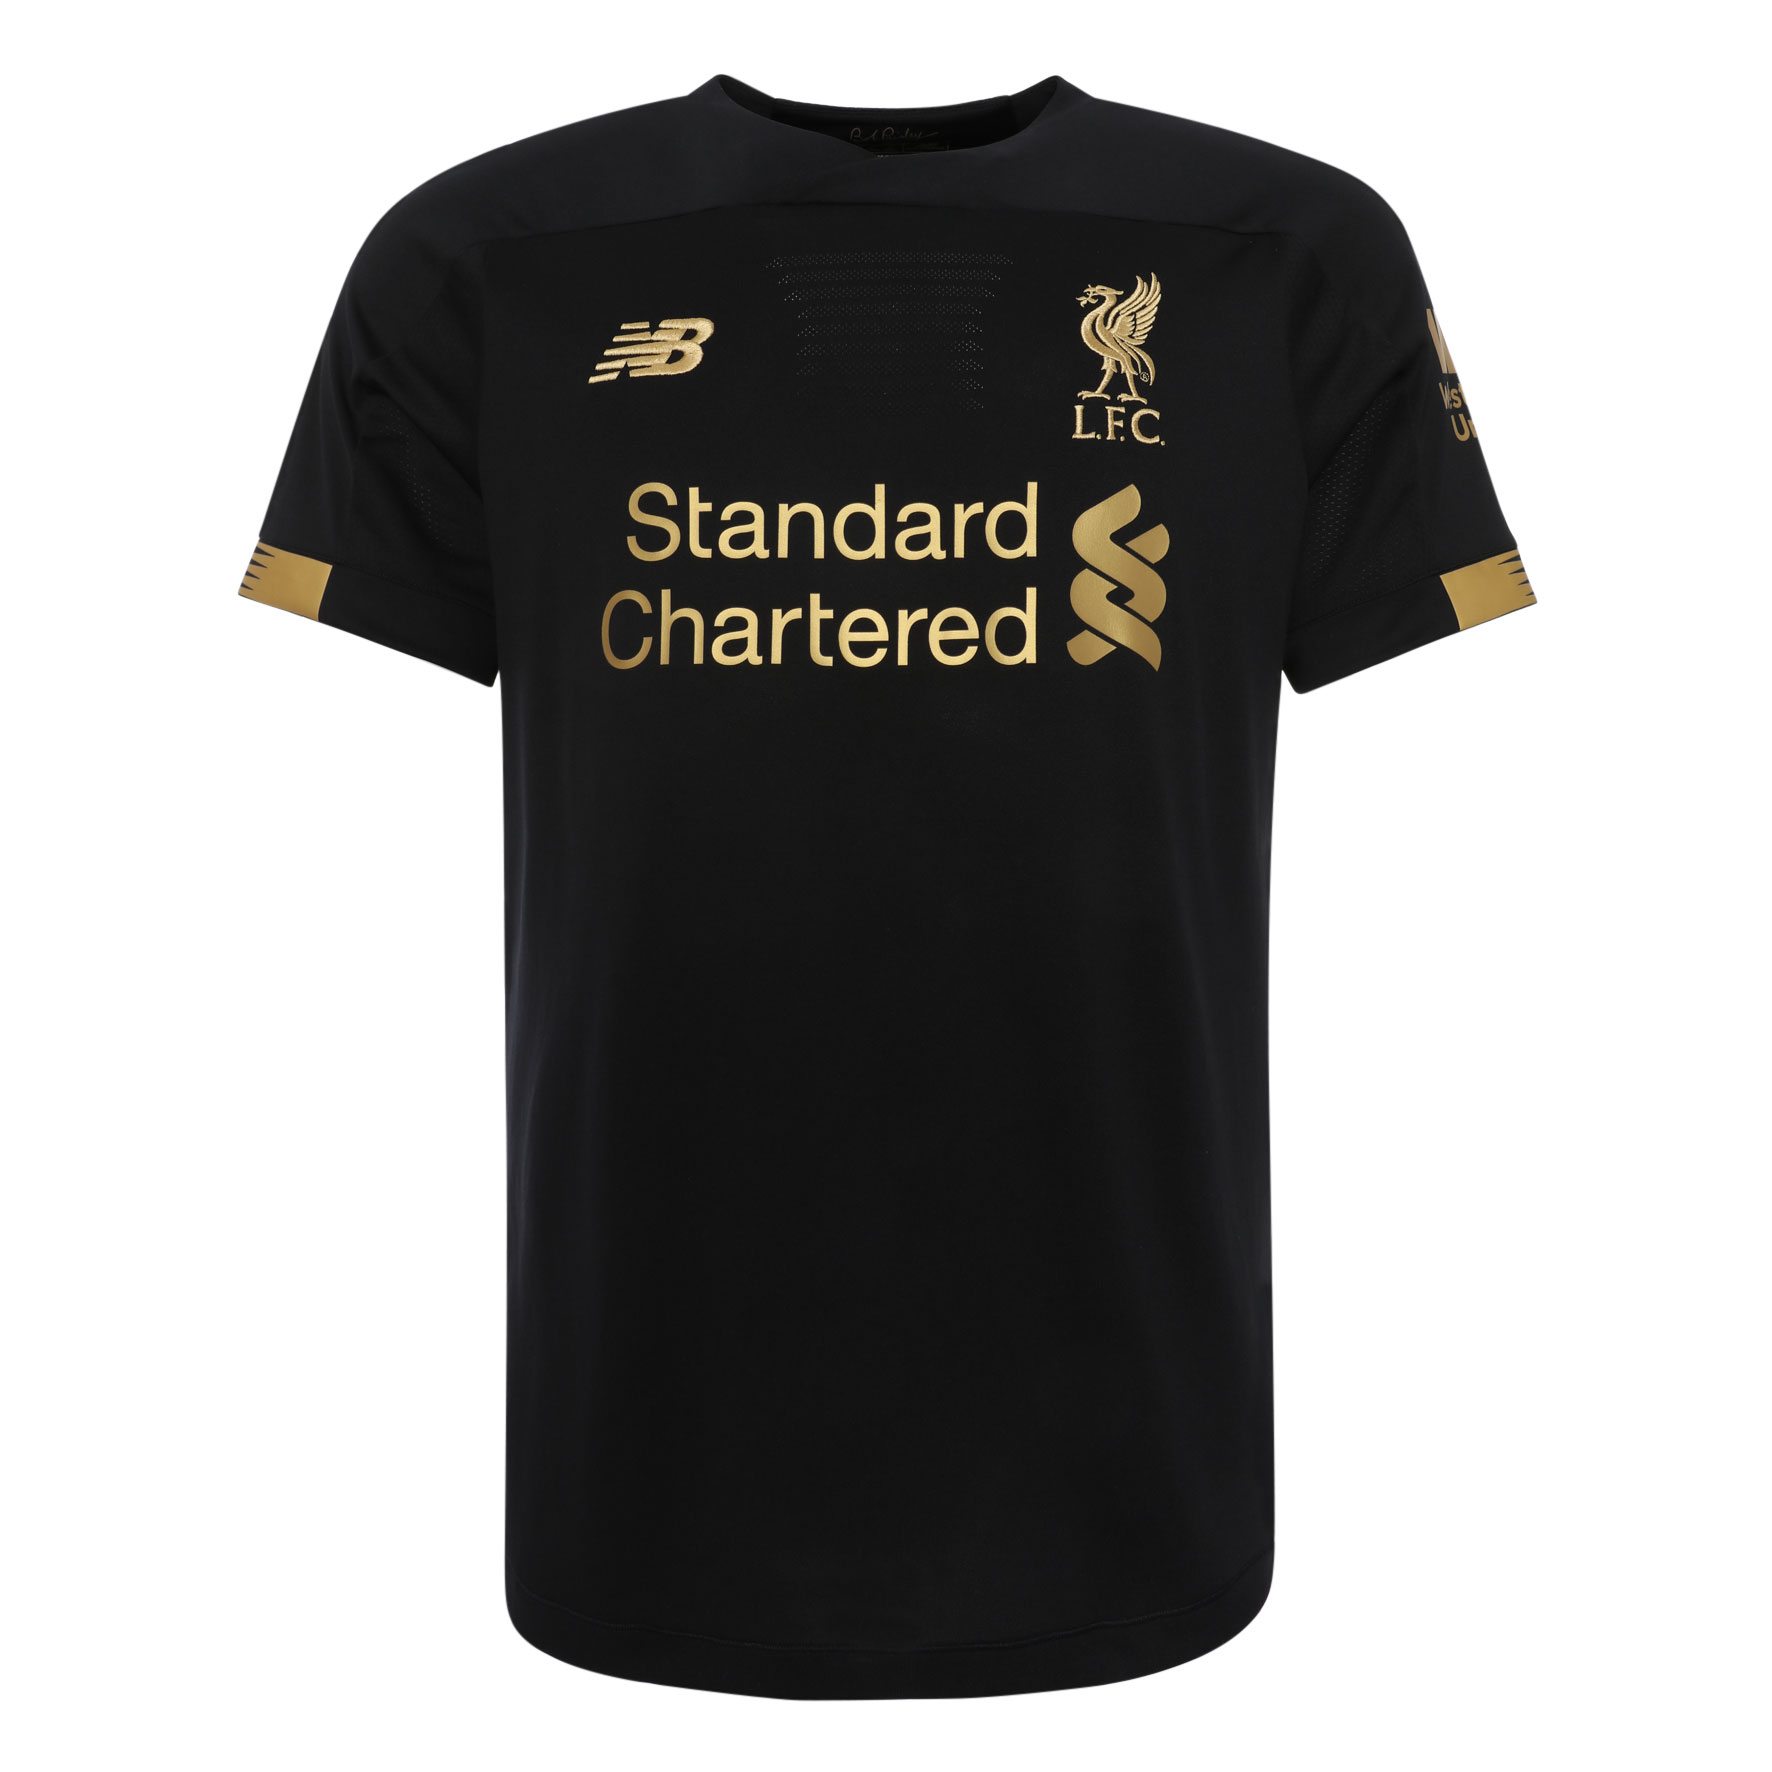 1fdb7bf6b Liverpool's 2019-20 home kit revealed - pre-order now - Liverpool FC